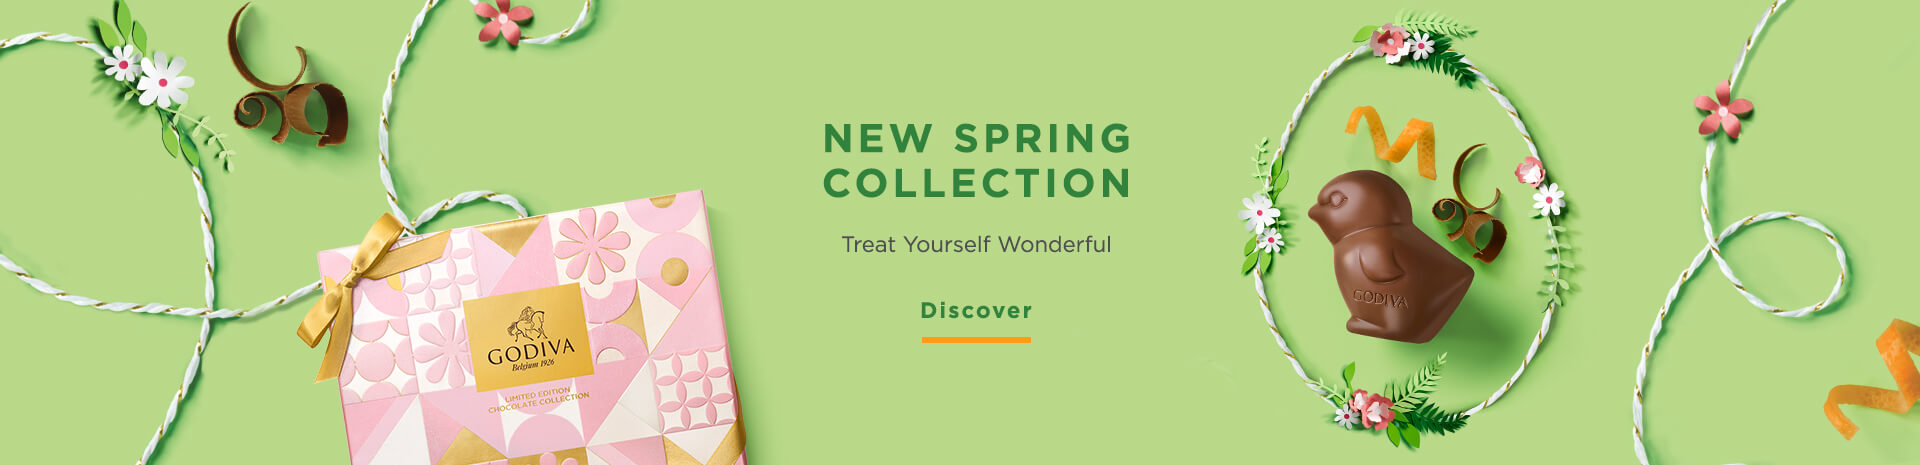 New Spring Collection - Godiva